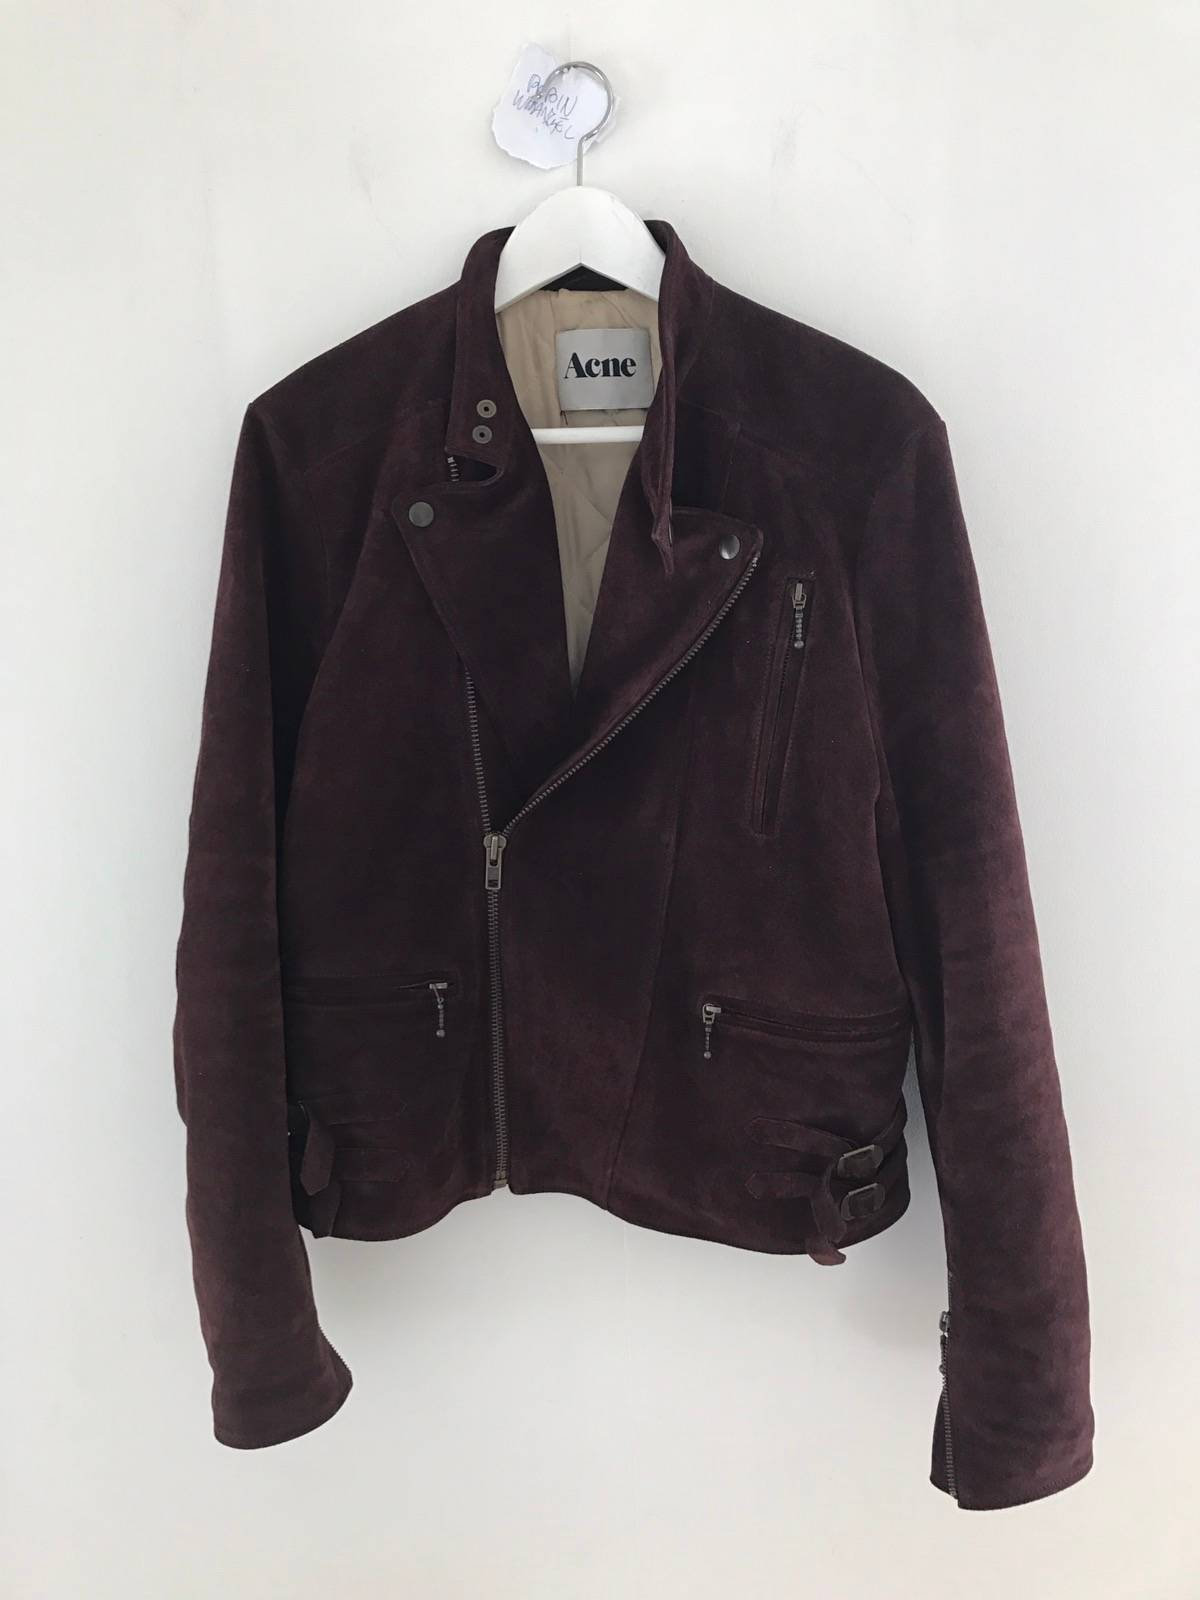 acne studios blue suede biker jacket size m leather jackets for sale grailed. Black Bedroom Furniture Sets. Home Design Ideas